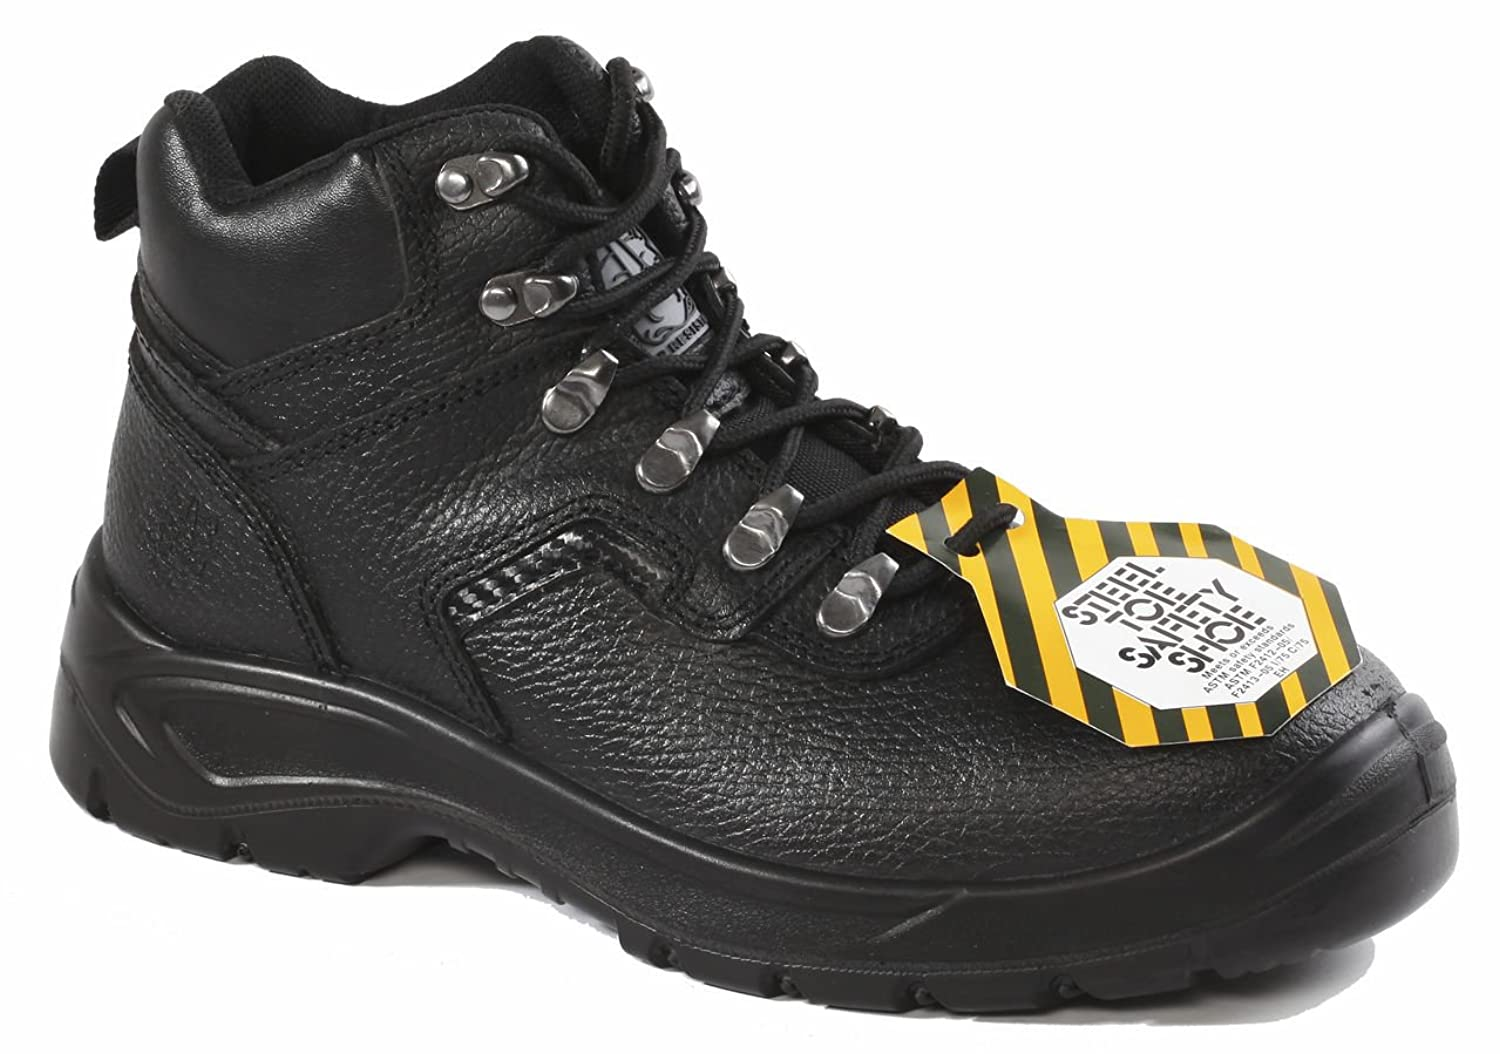 51S01Ð Rhino Steel Toe Safety Work Boot